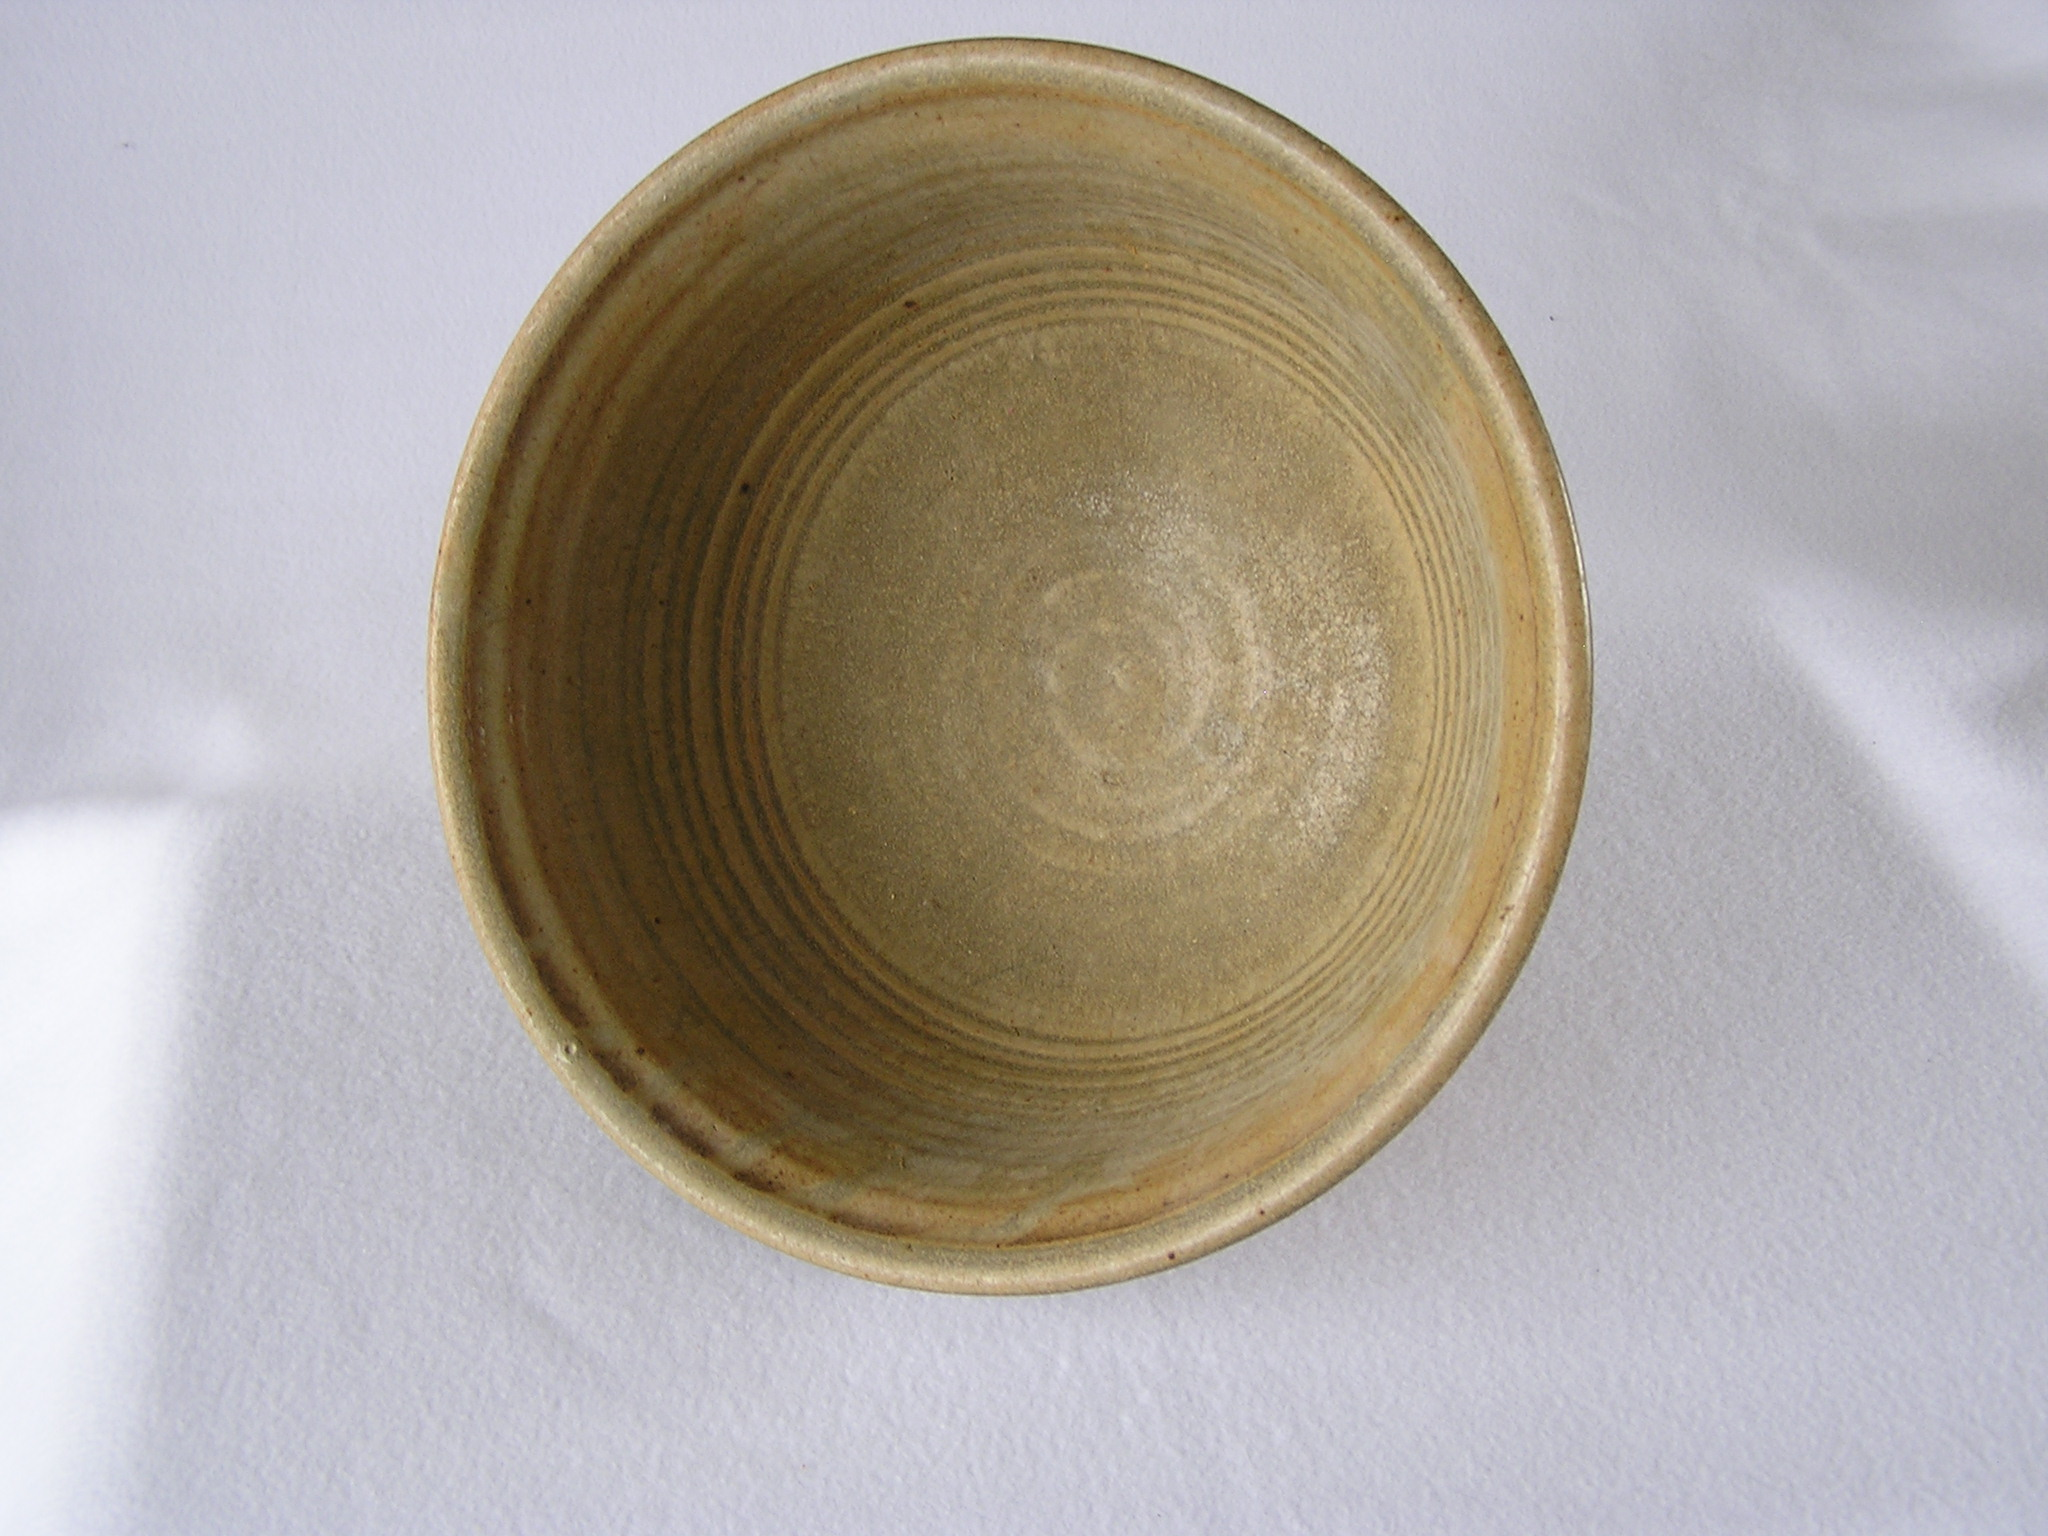 Bowl- Flared Rim, Tan 5.5x12 in ($60)